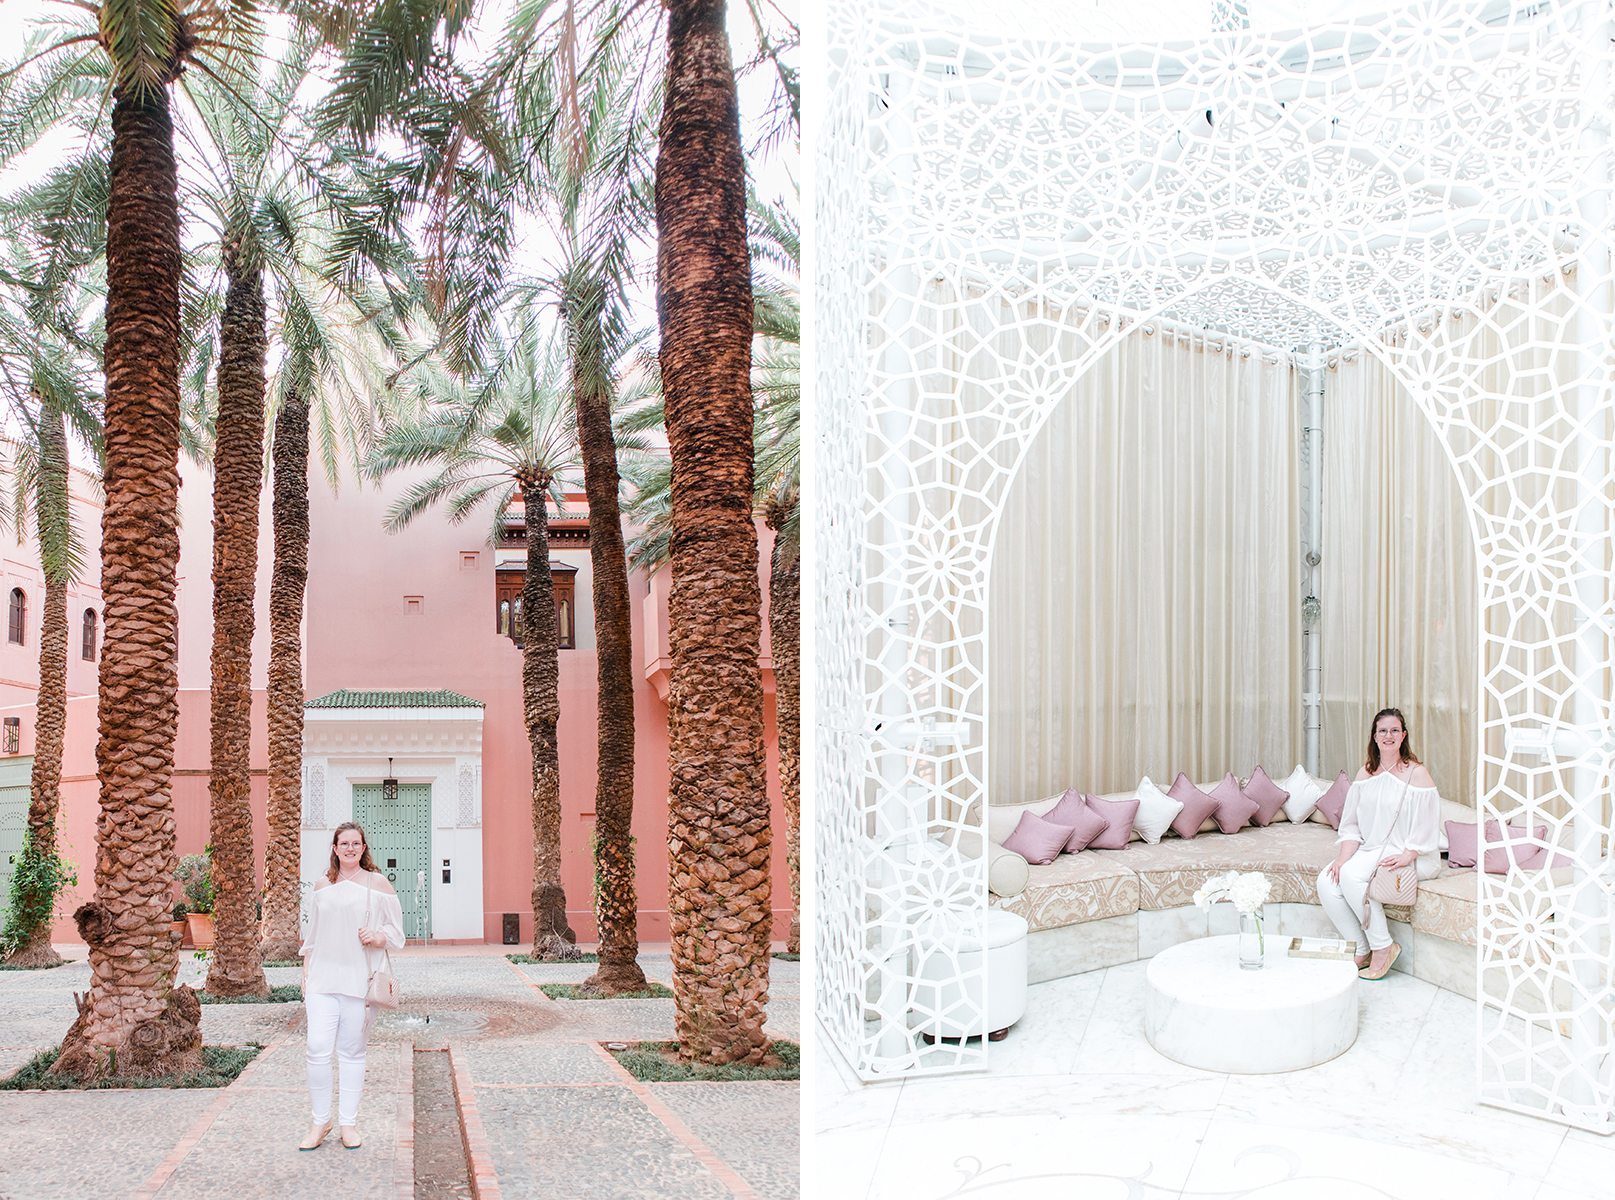 The Most Instagrammable Places in Marrakech